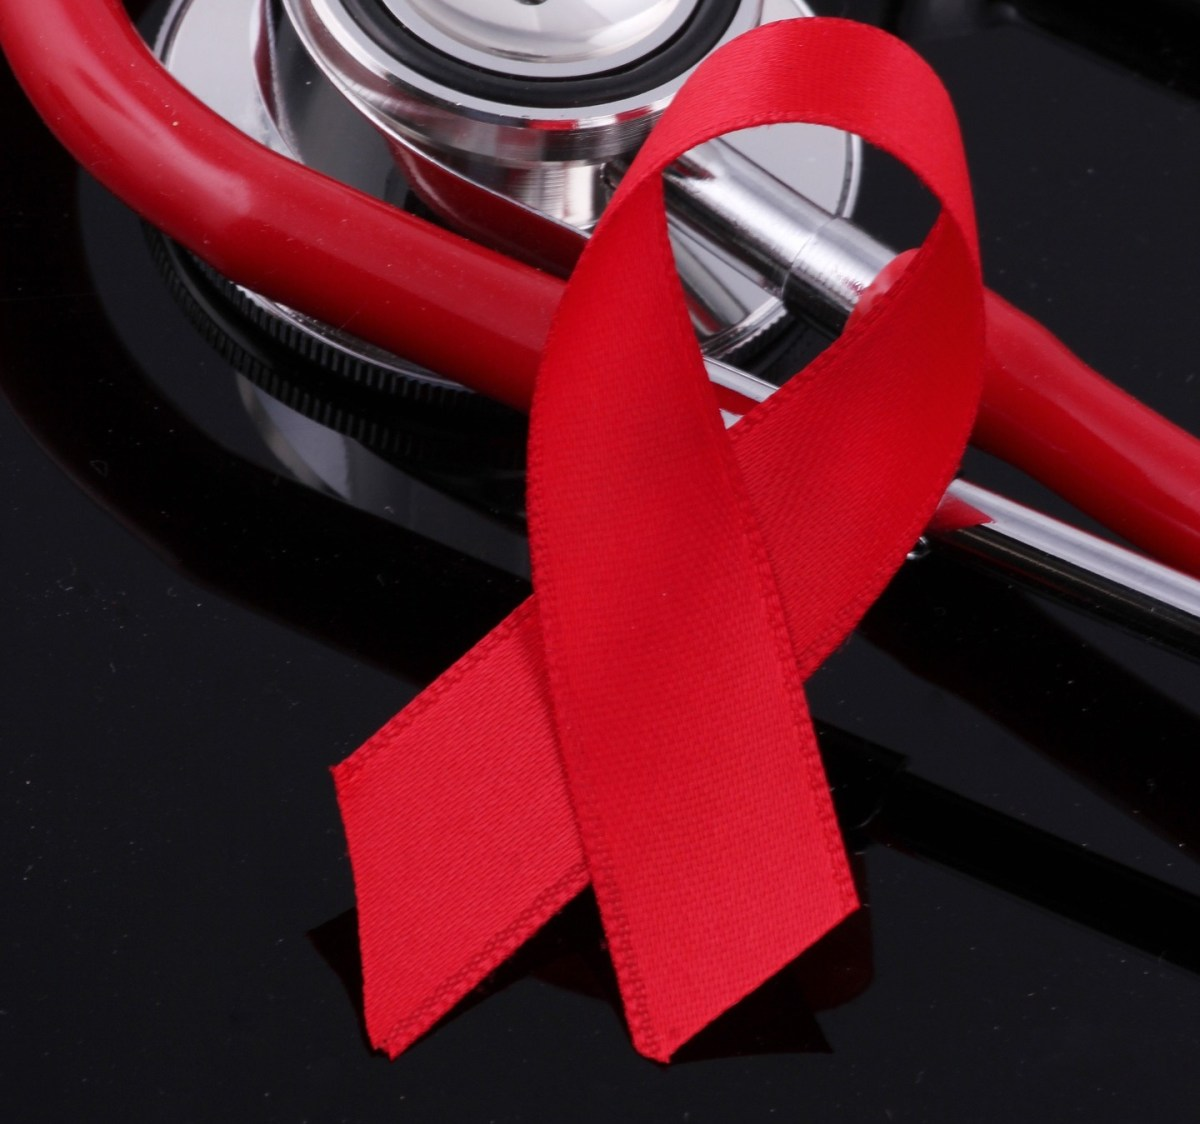 HIV/AIDS vaccine: Why don't we have one after 37 years?